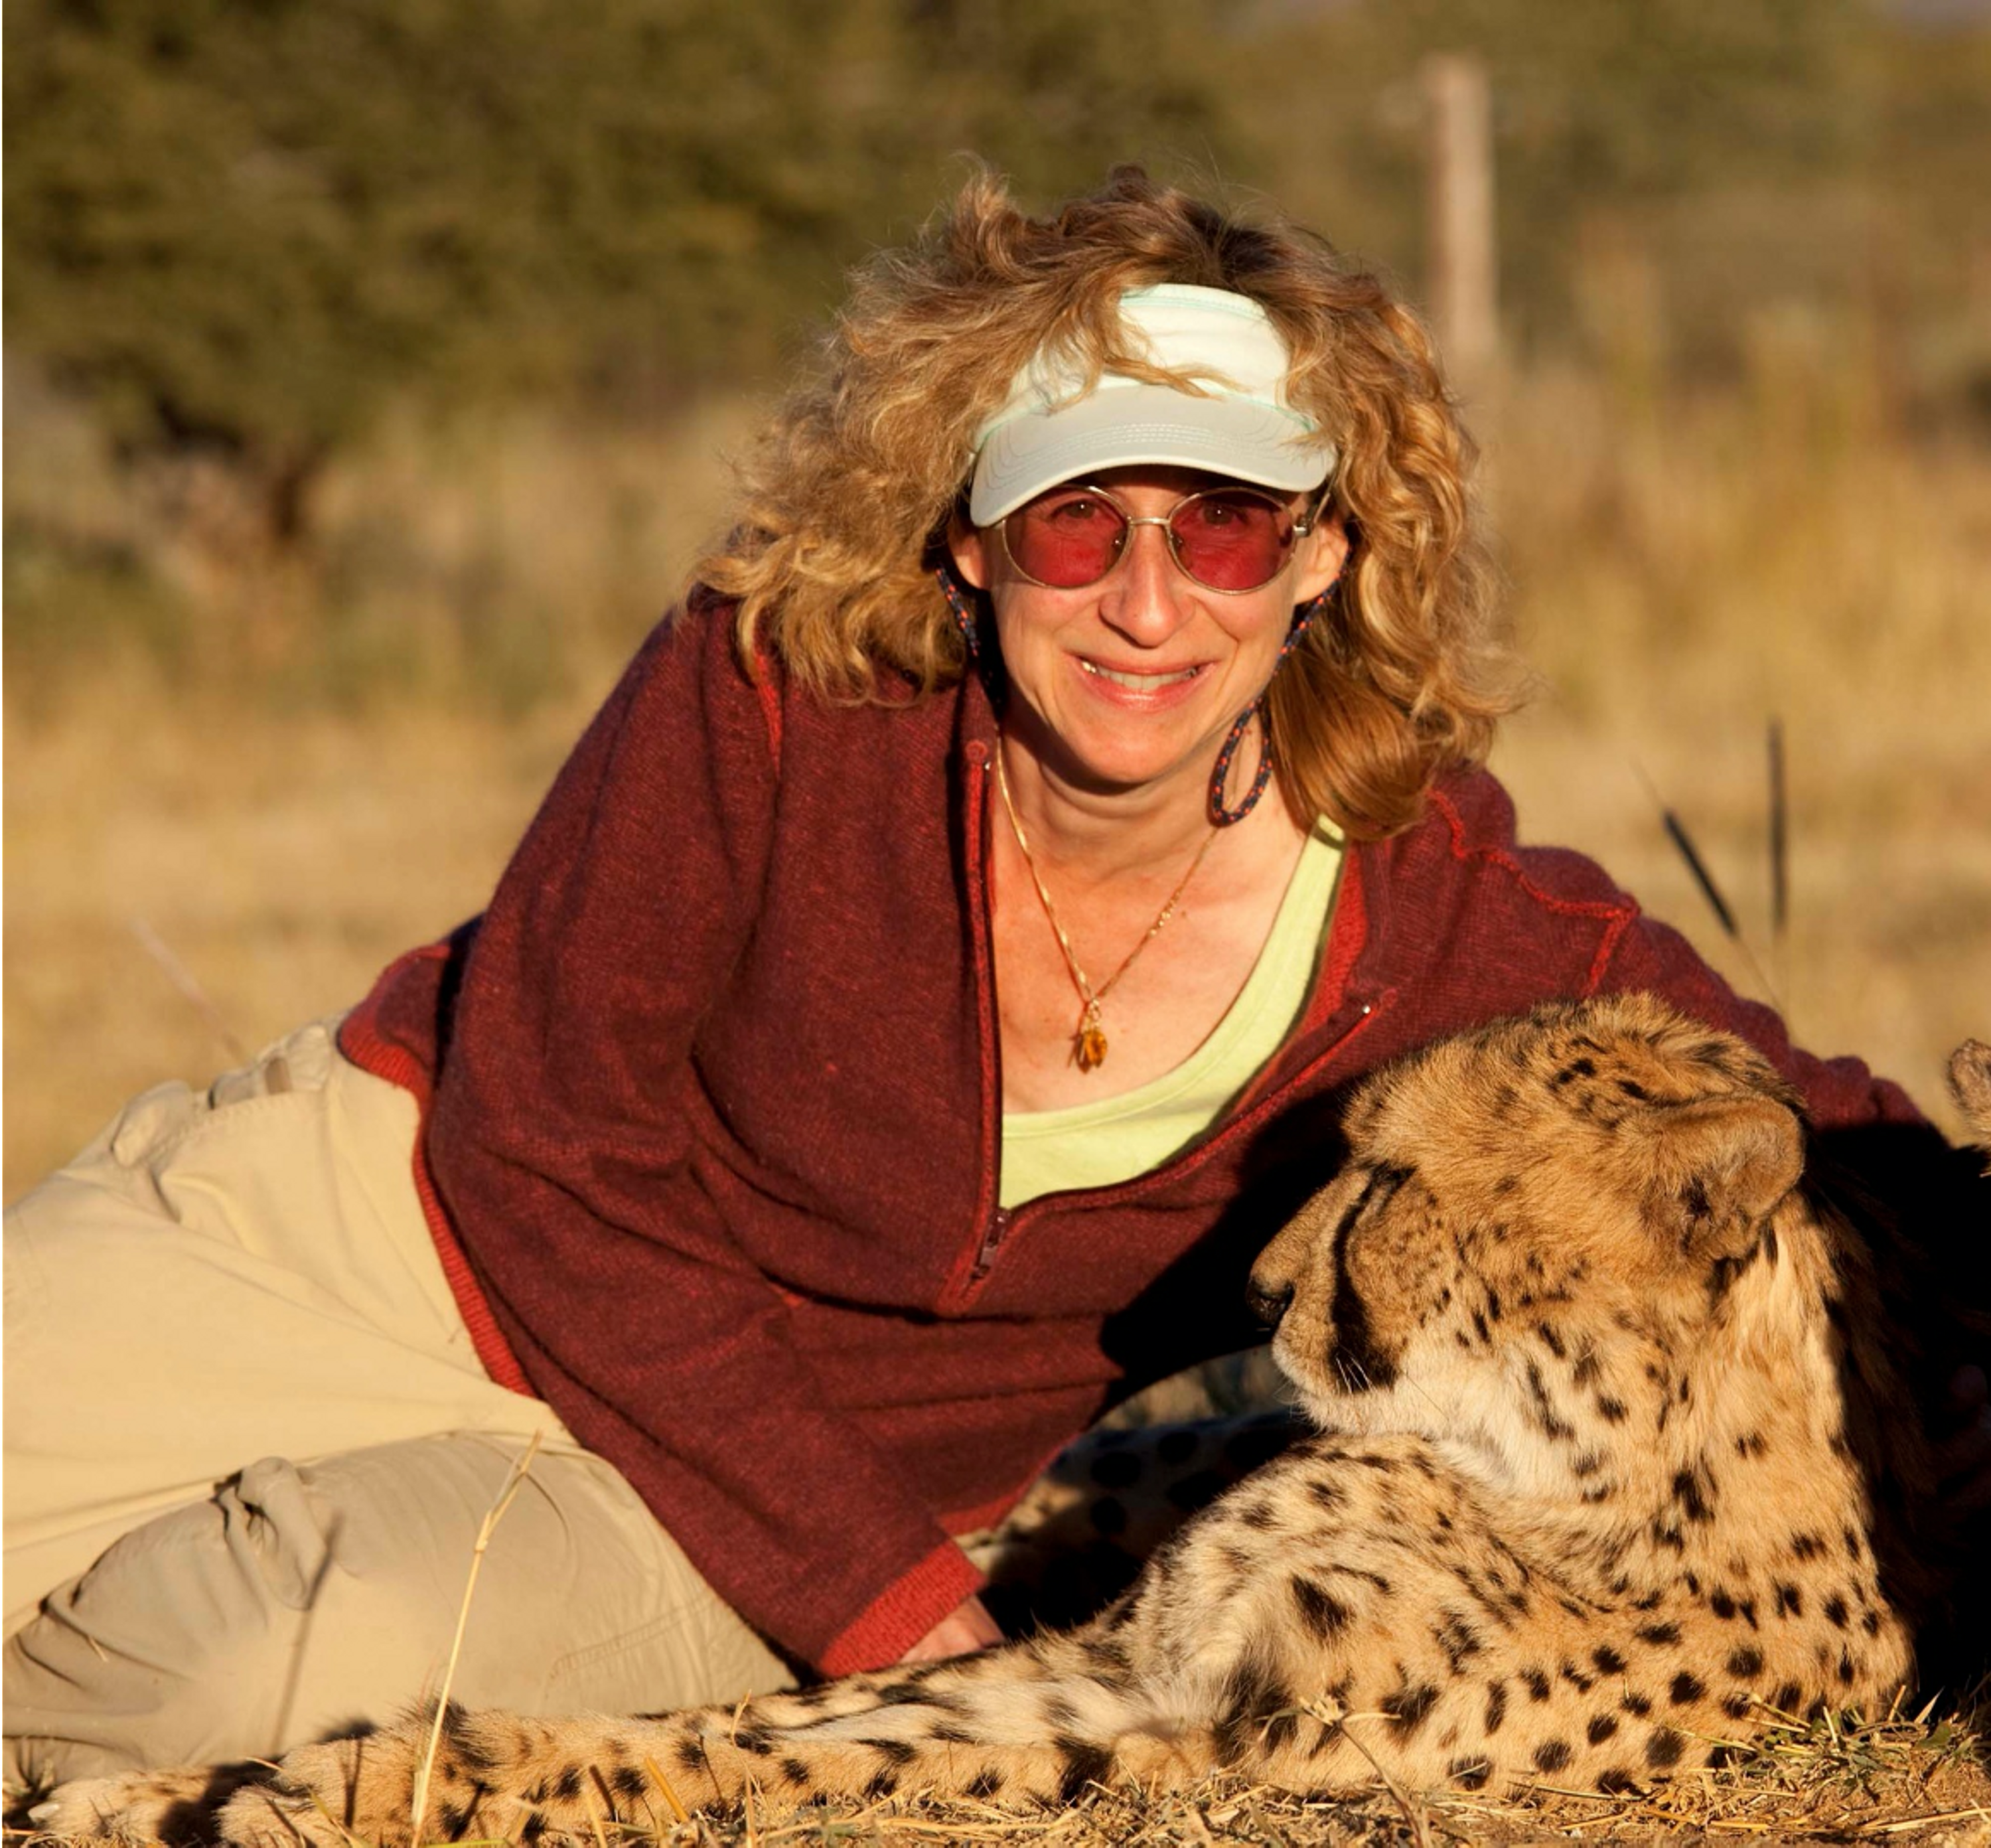 Sy montgomery with a cheetah